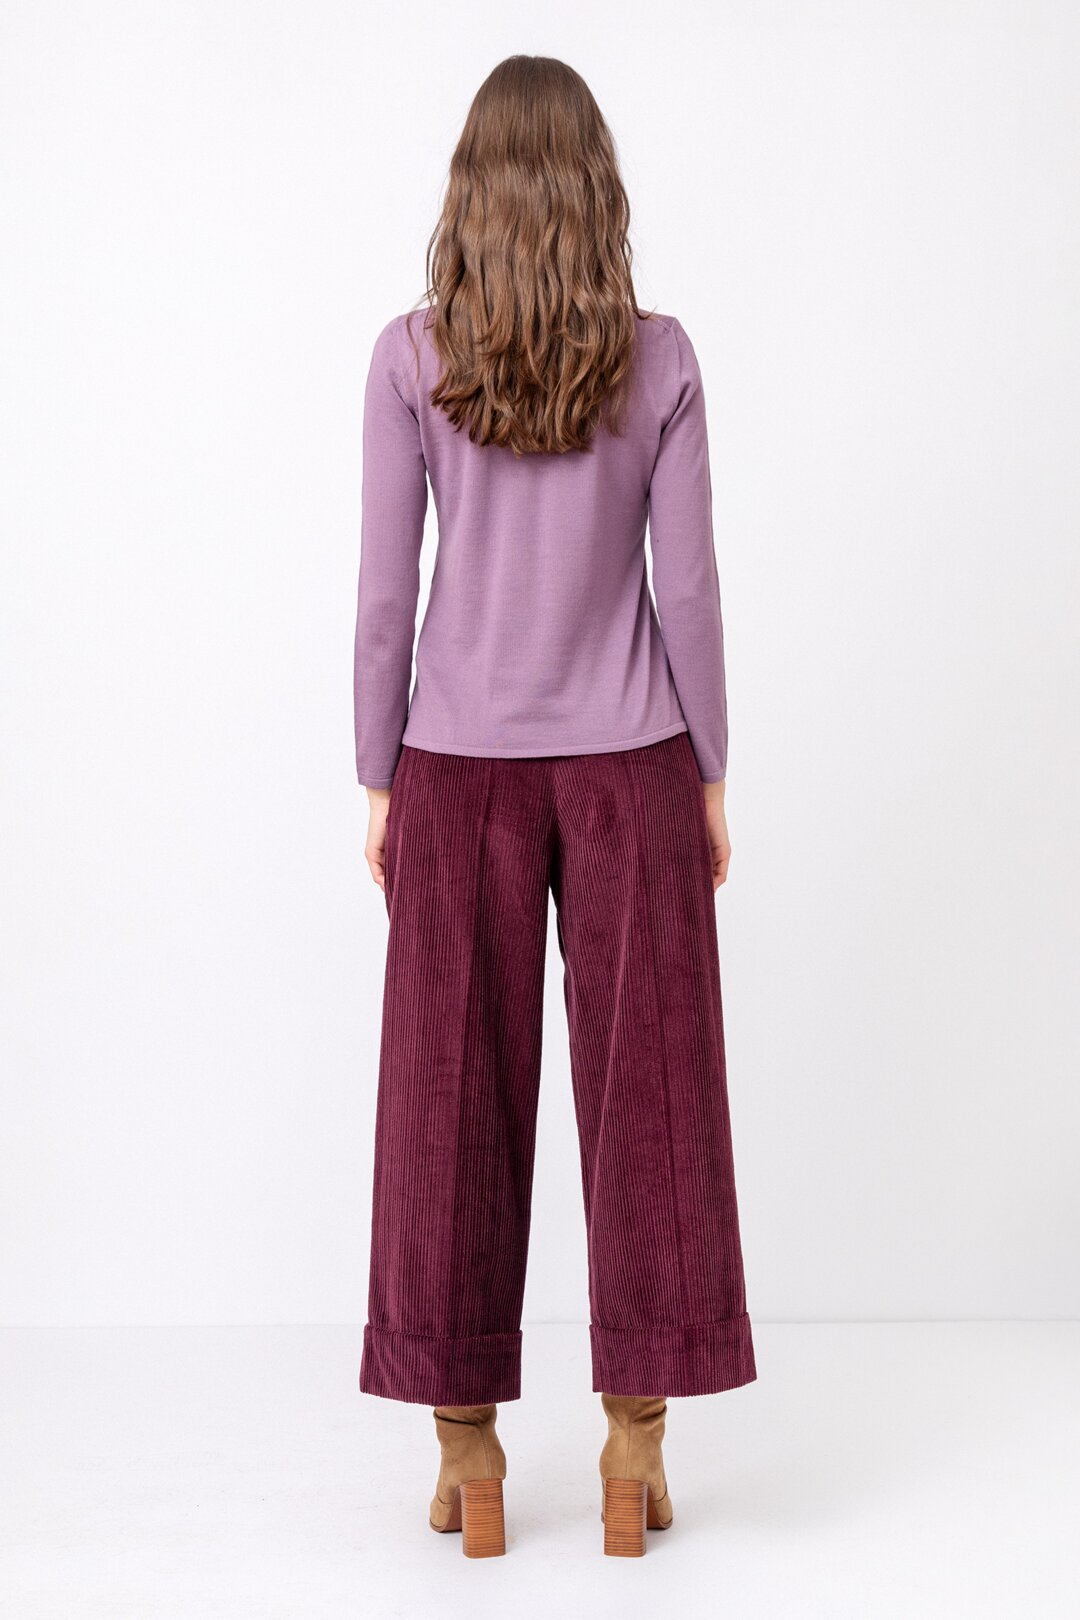 outfit-7c8a8509